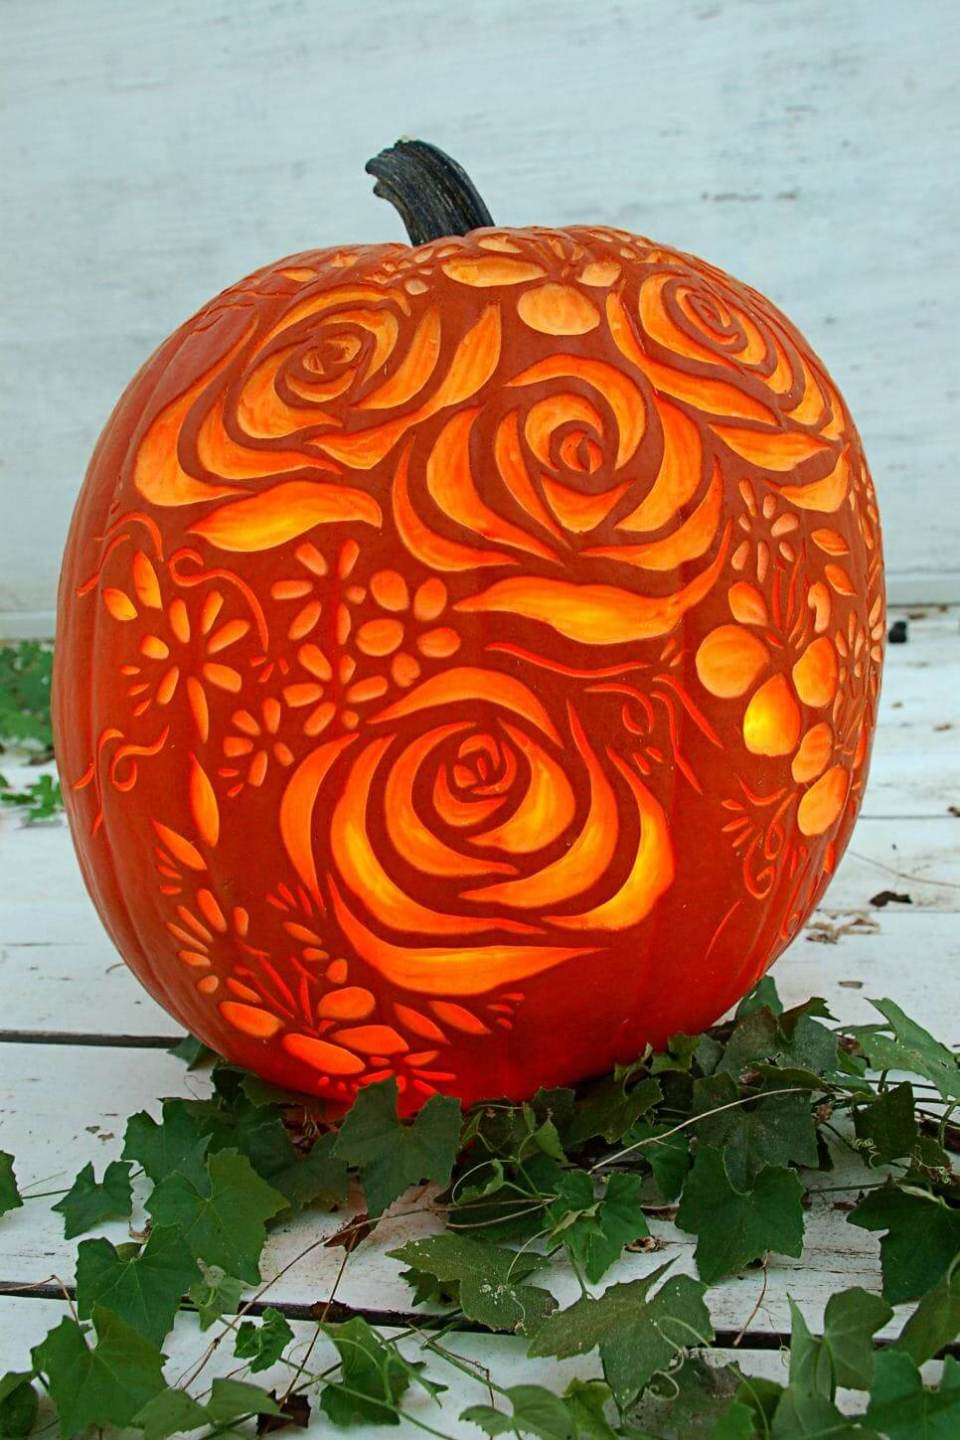 DIY Pumpkin Carving Ideas: Rose Petals